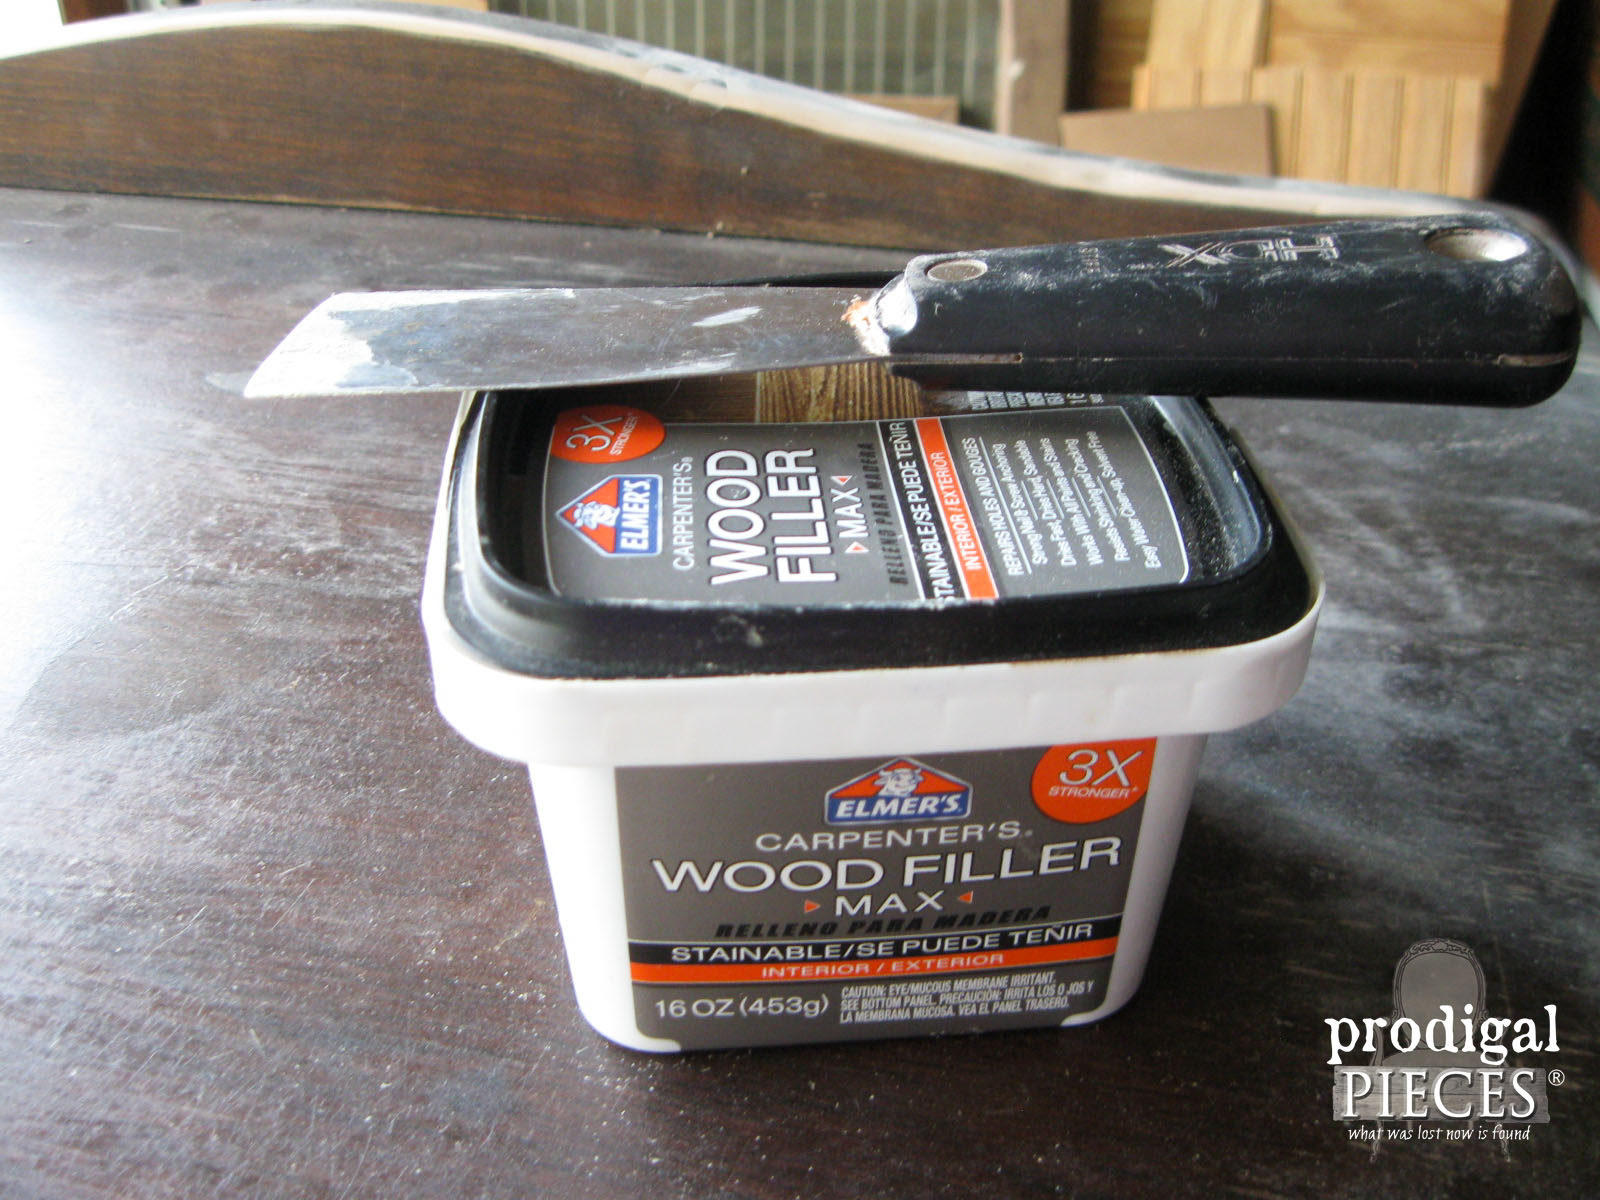 Elmer's Wood Filler for Making Repairs | Prodigal Pieces | www.prodigalpieces.com